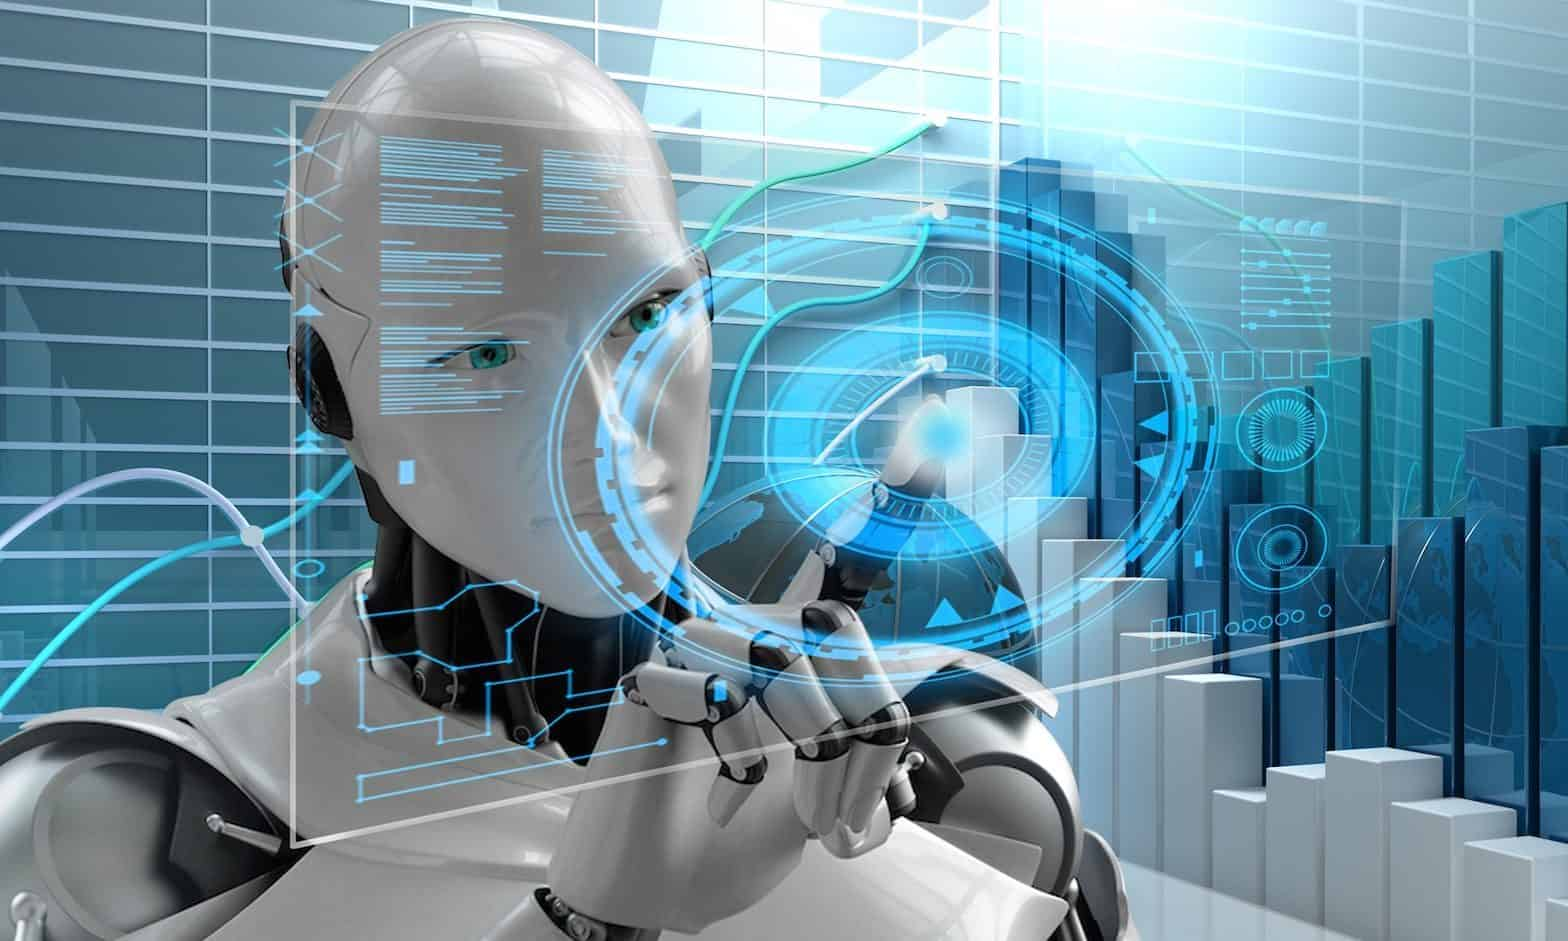 Global Artificial Intelligence in Fashion Retail Market is Showing Significant Growth During Pandemic with Leading Players in Market – STITCH FIX, Snap, TRUEFIT, FINERY, STYLUMIA